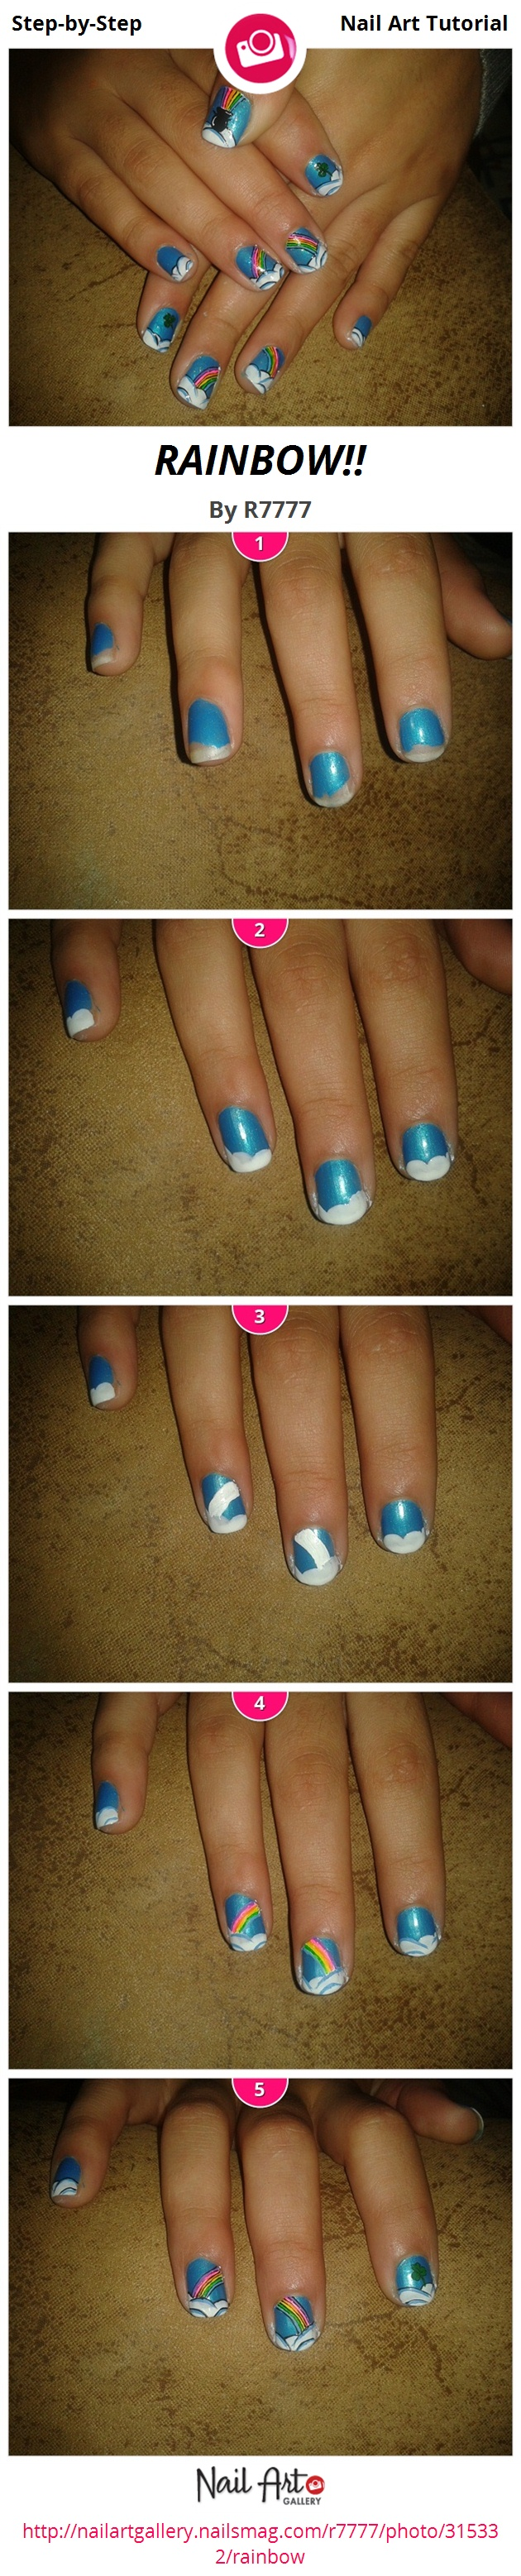 RAINBOW!! by R7777 - Nail Art Gallery Step-by-Step Tutorials ...